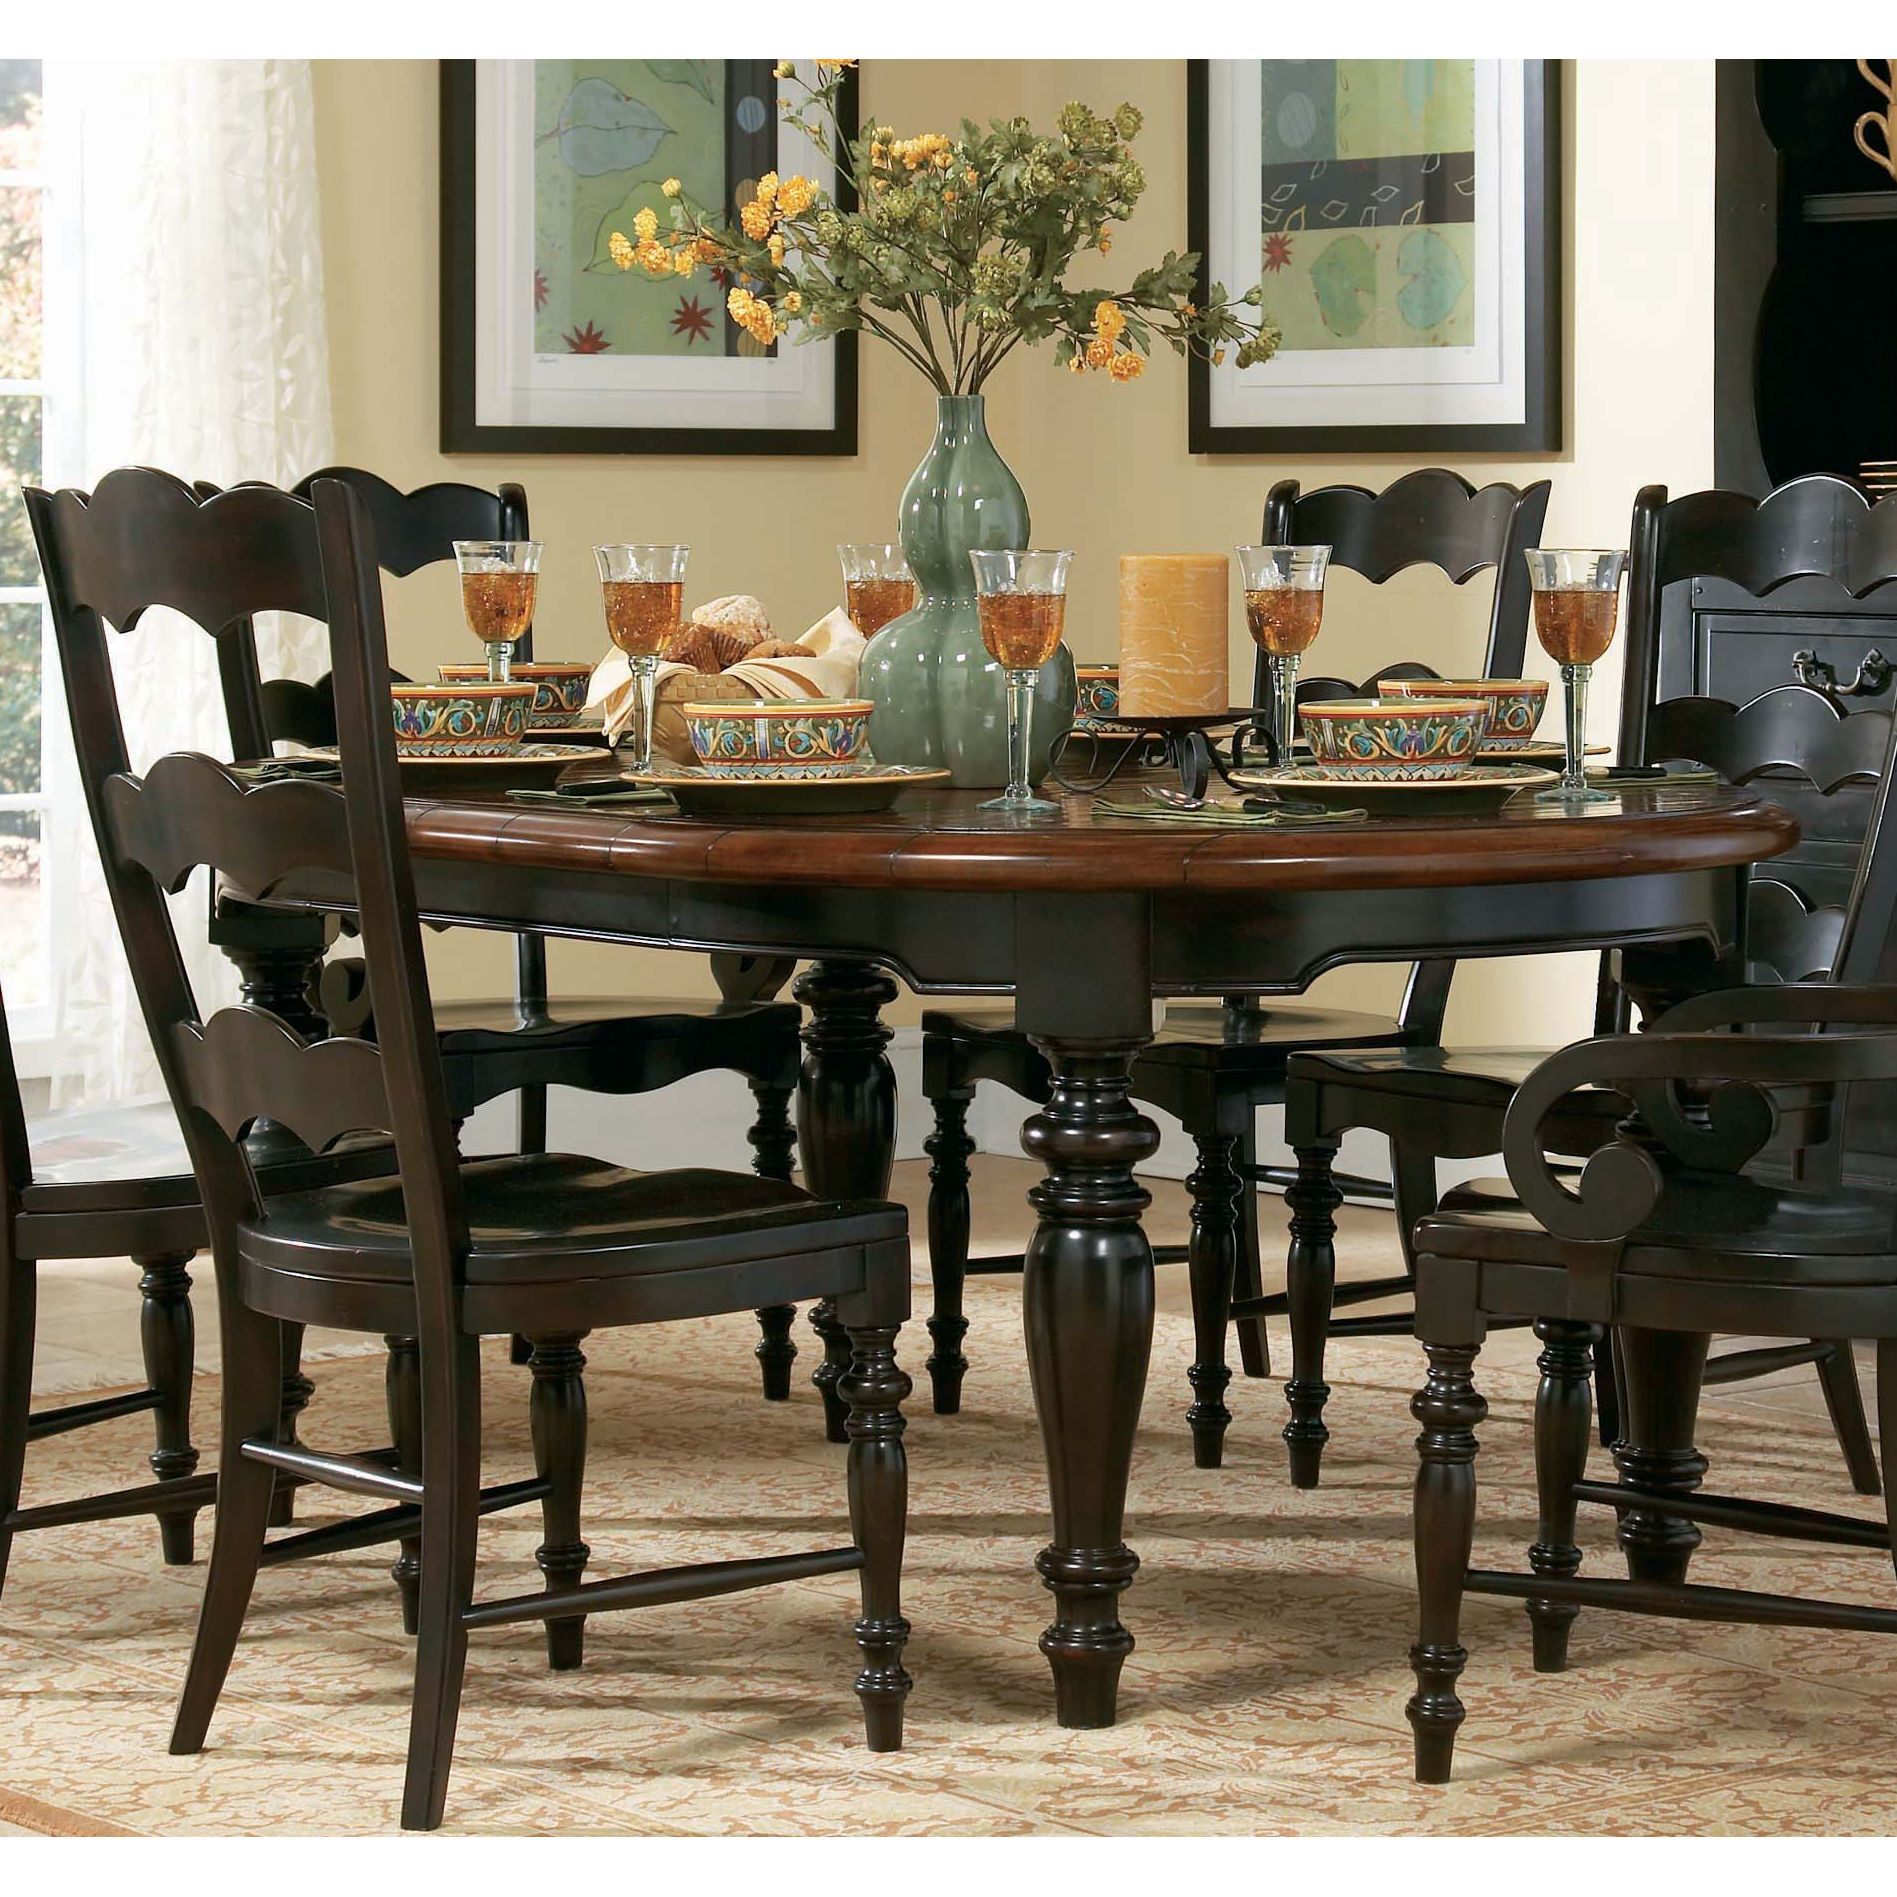 Dining Area Round Dining Room Table Round Dining Room Colonial